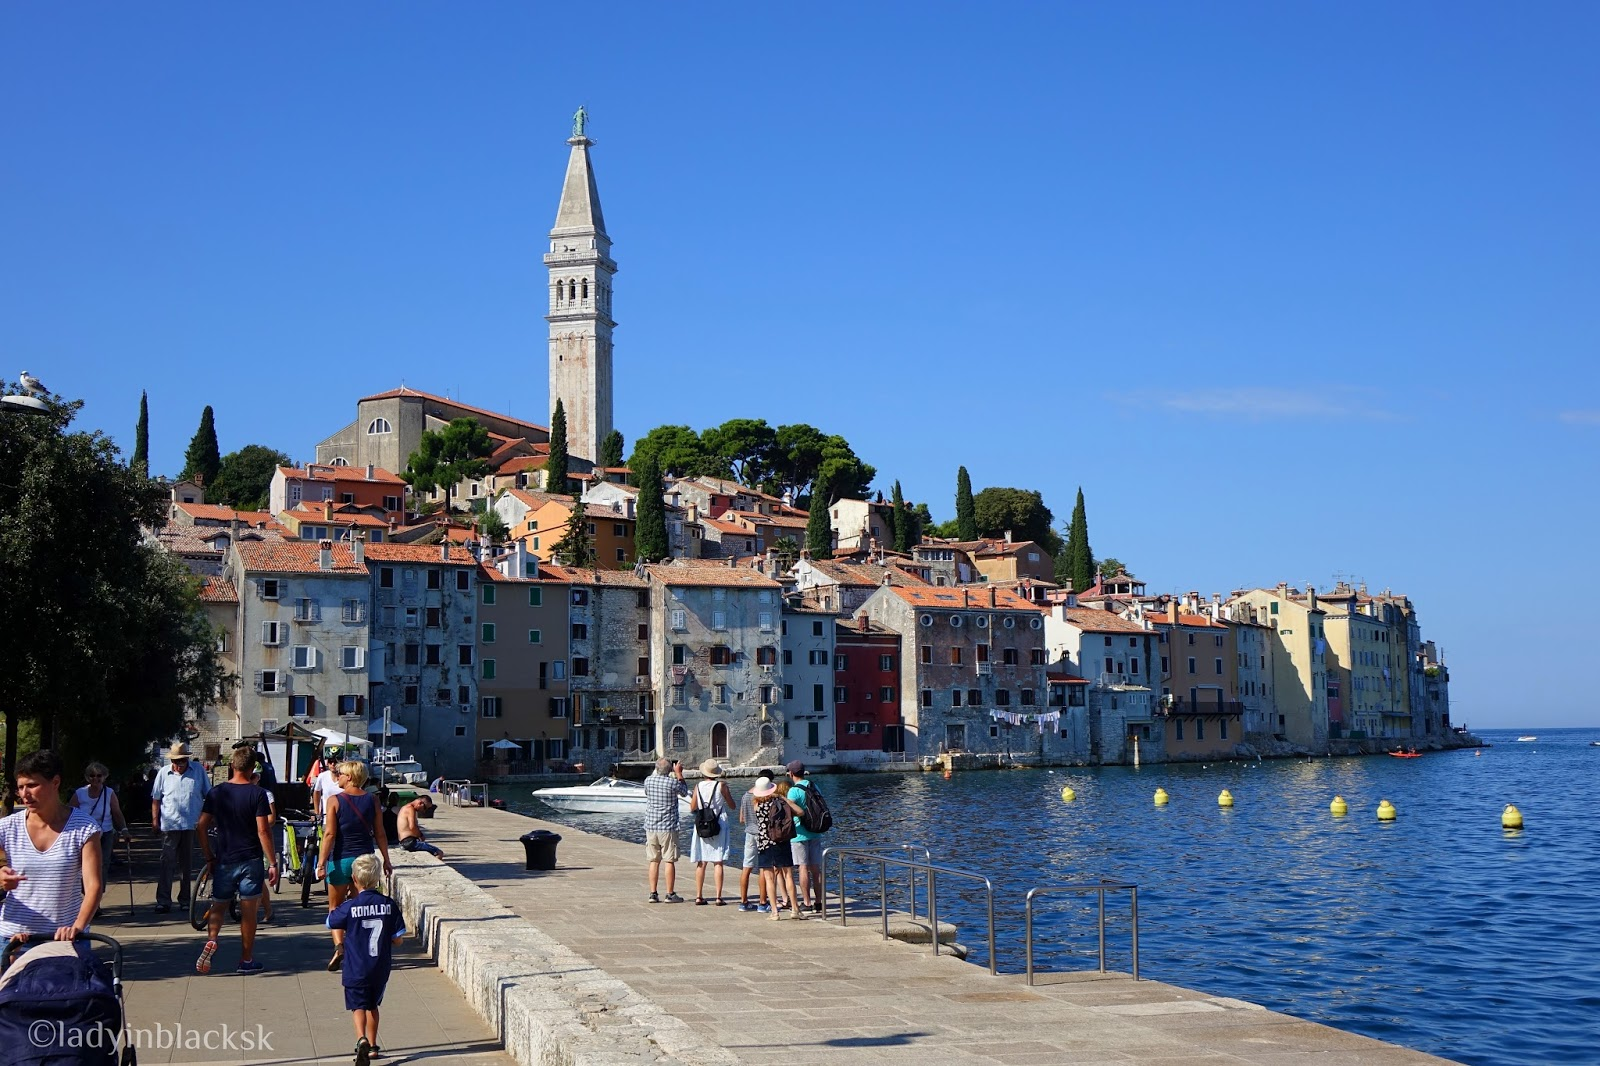 Picturesque Rovinj